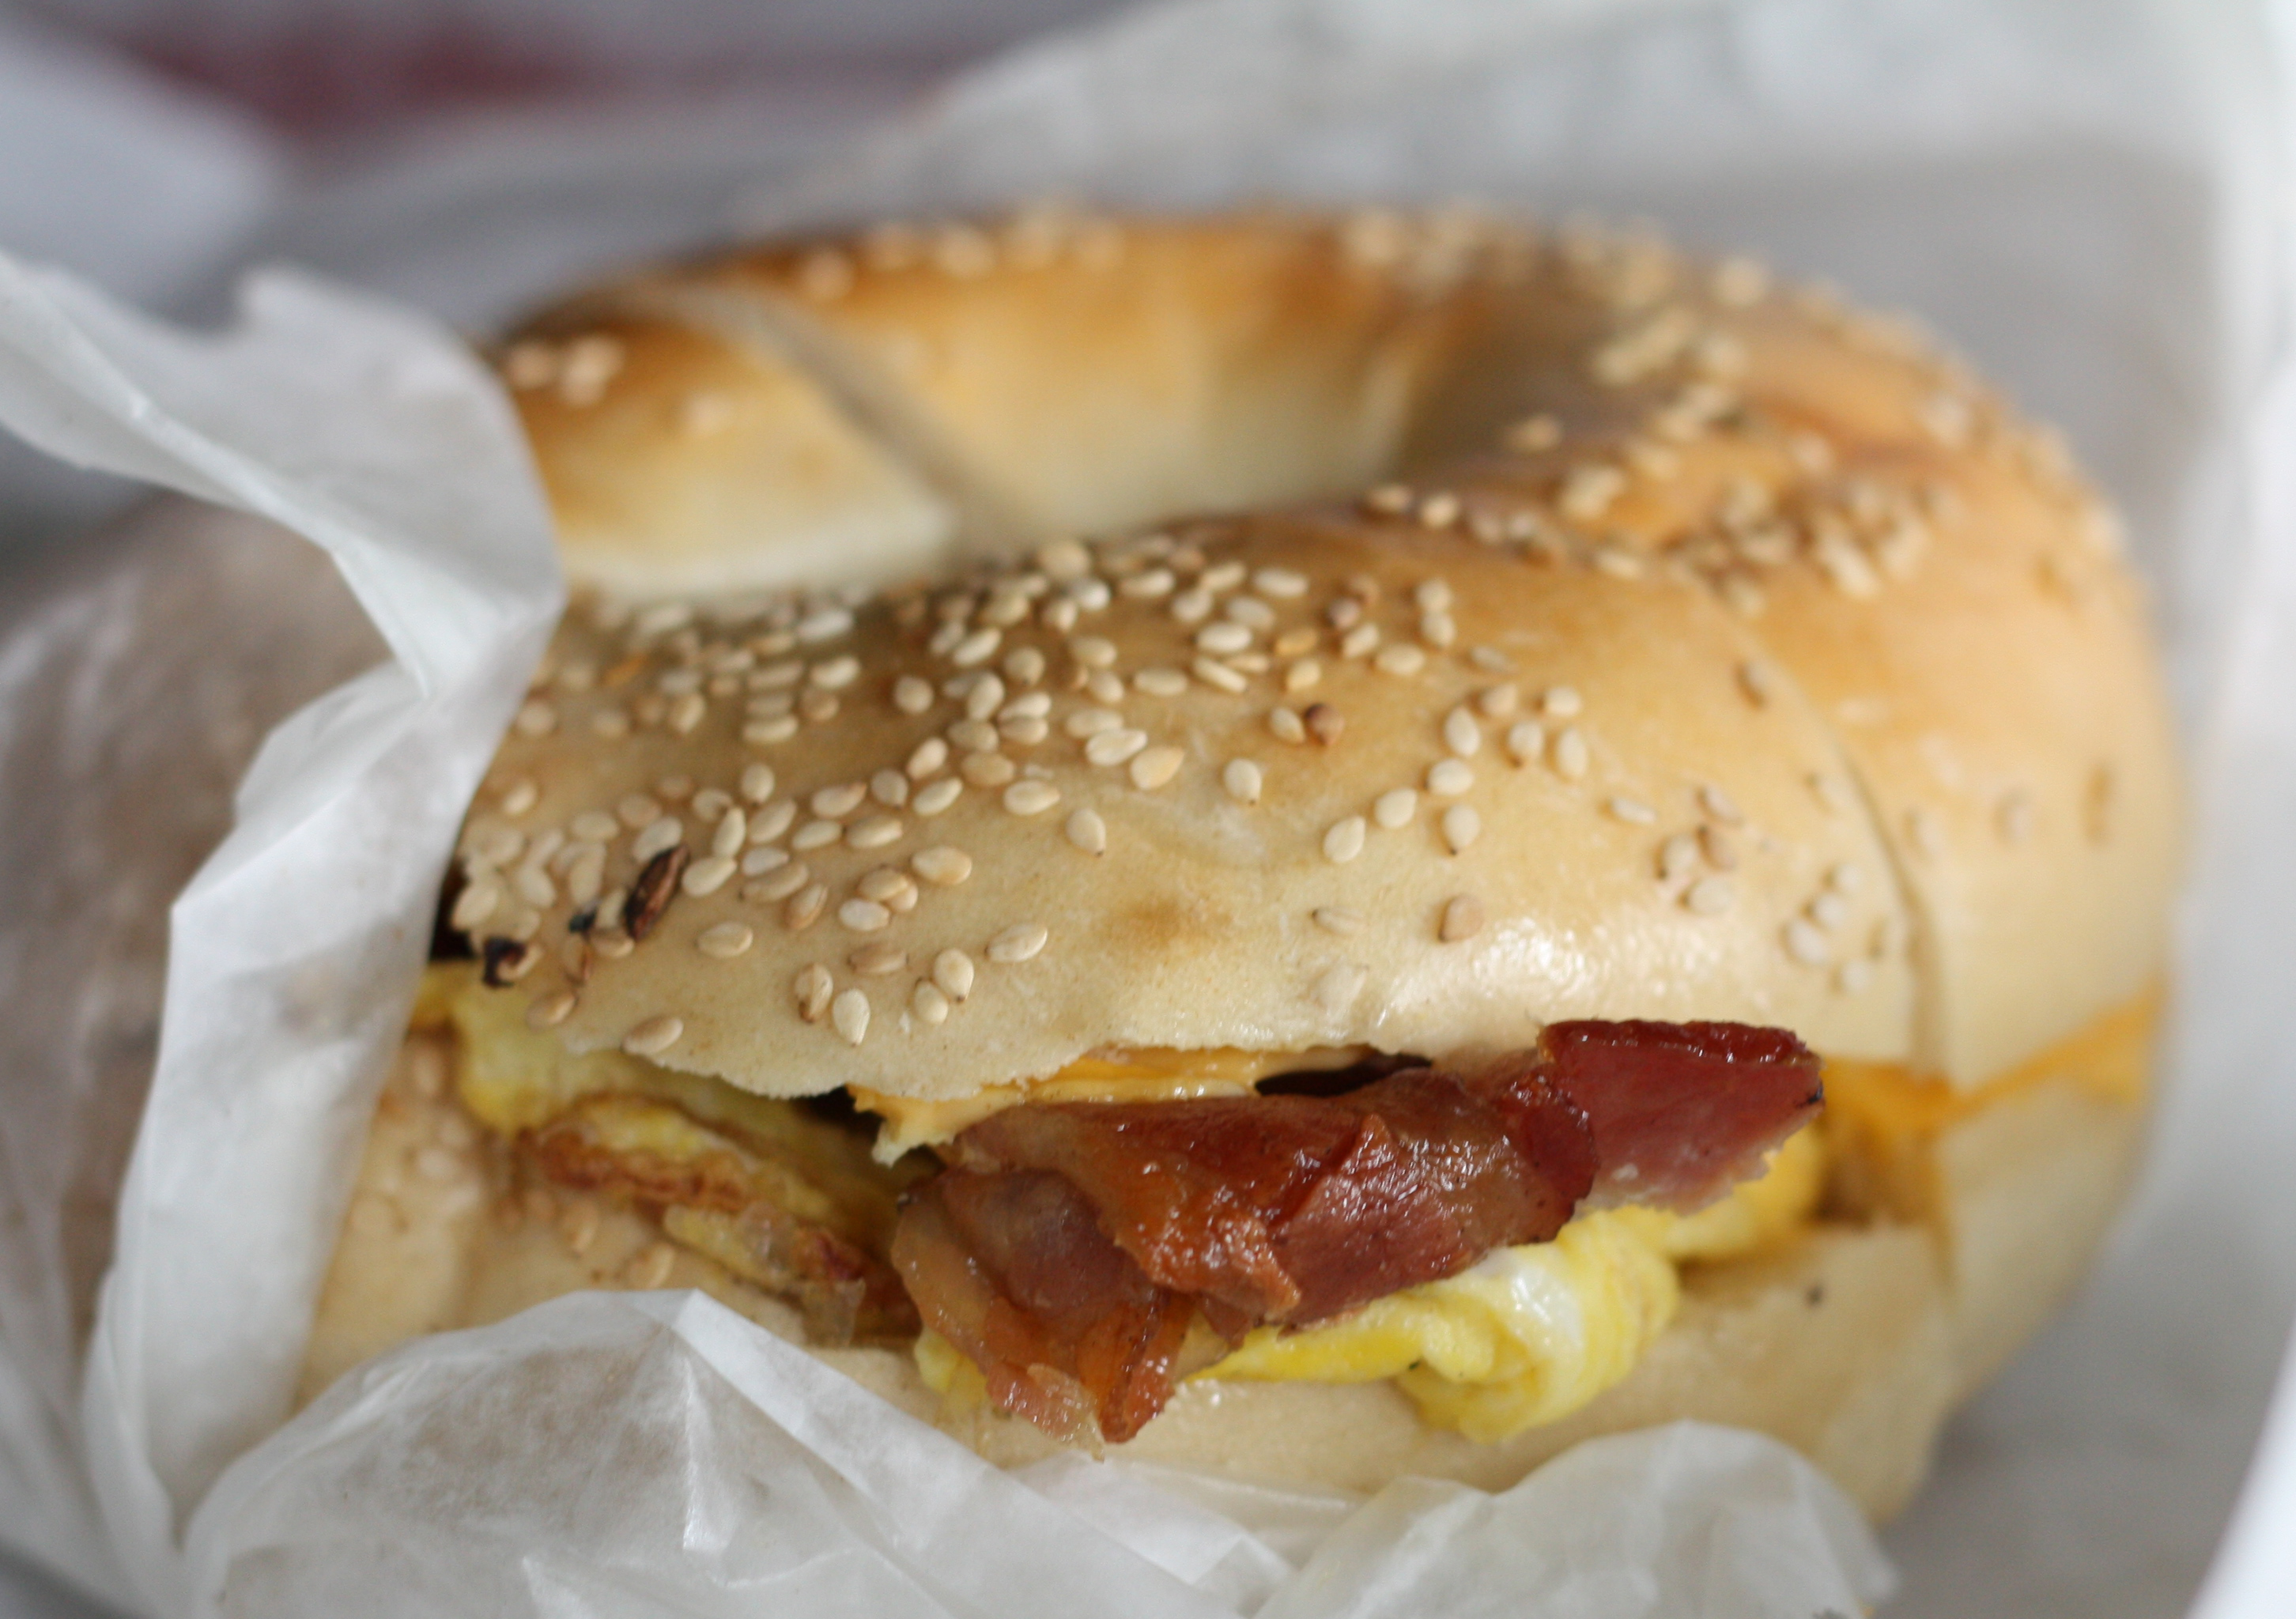 New York Bagel Egg Sandwich Image